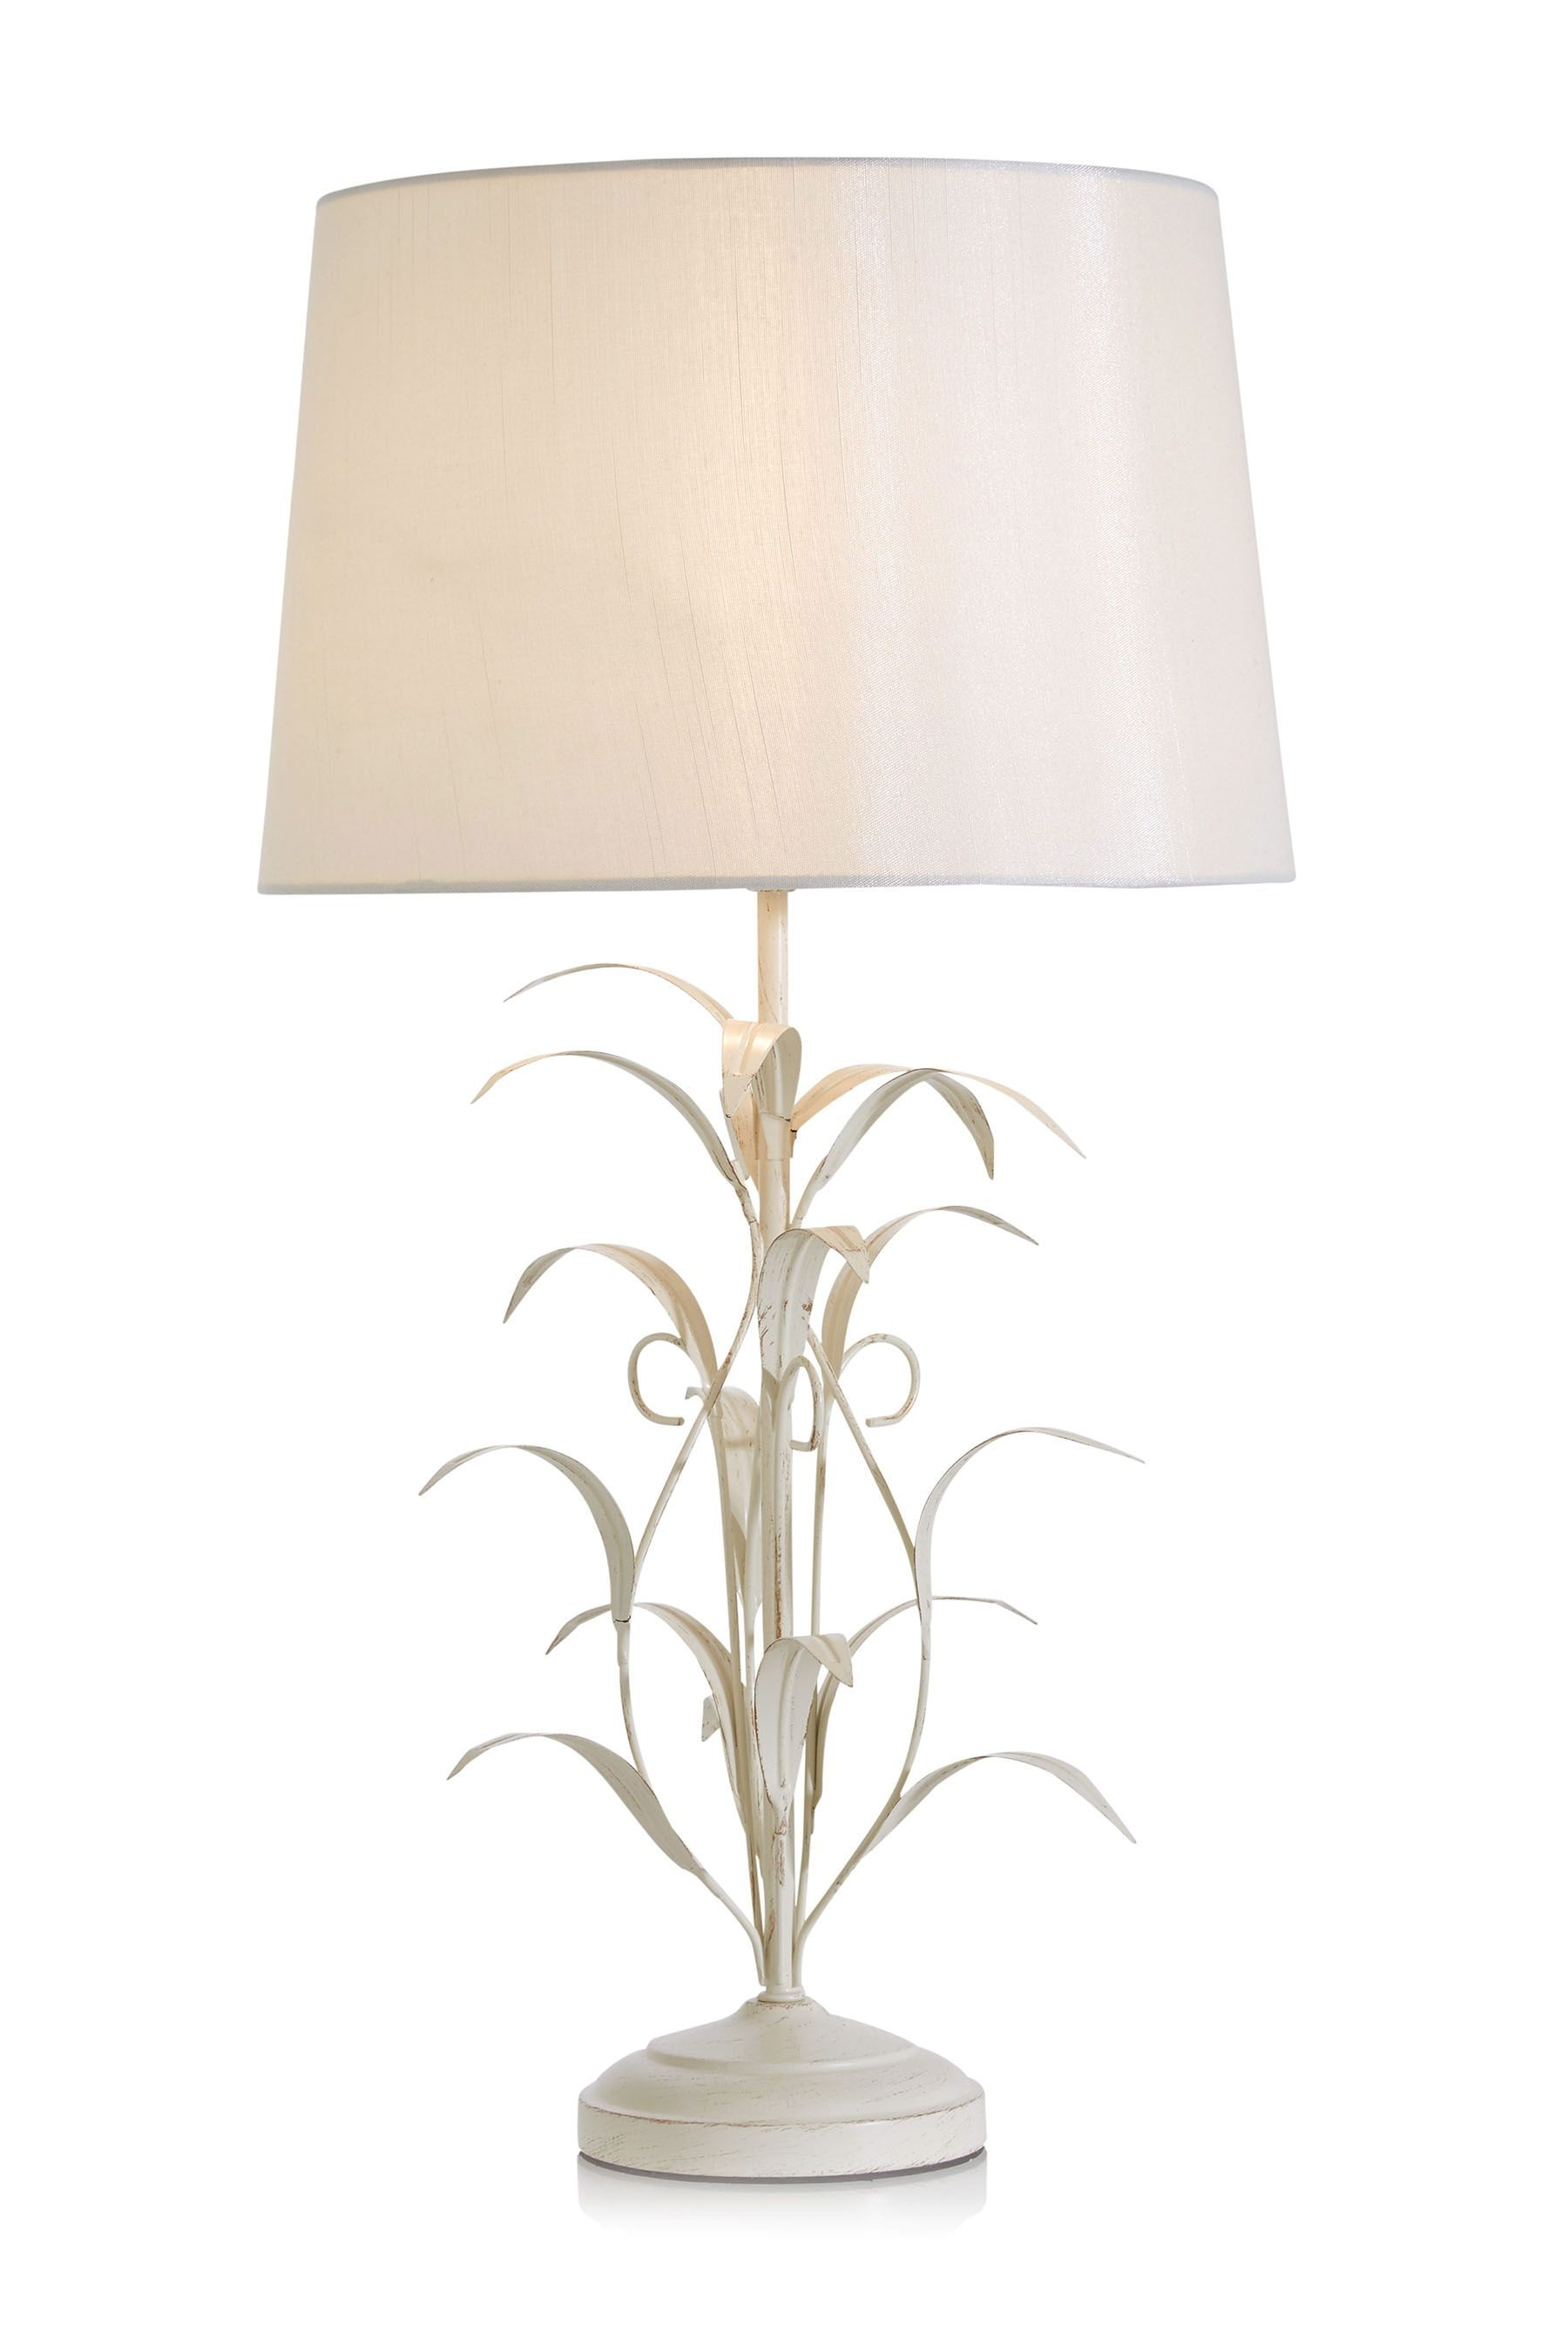 Buy allegra table lamp with fabric shade from the next uk online buy allegra table lamp with fabric shade from the next uk online shop geotapseo Image collections